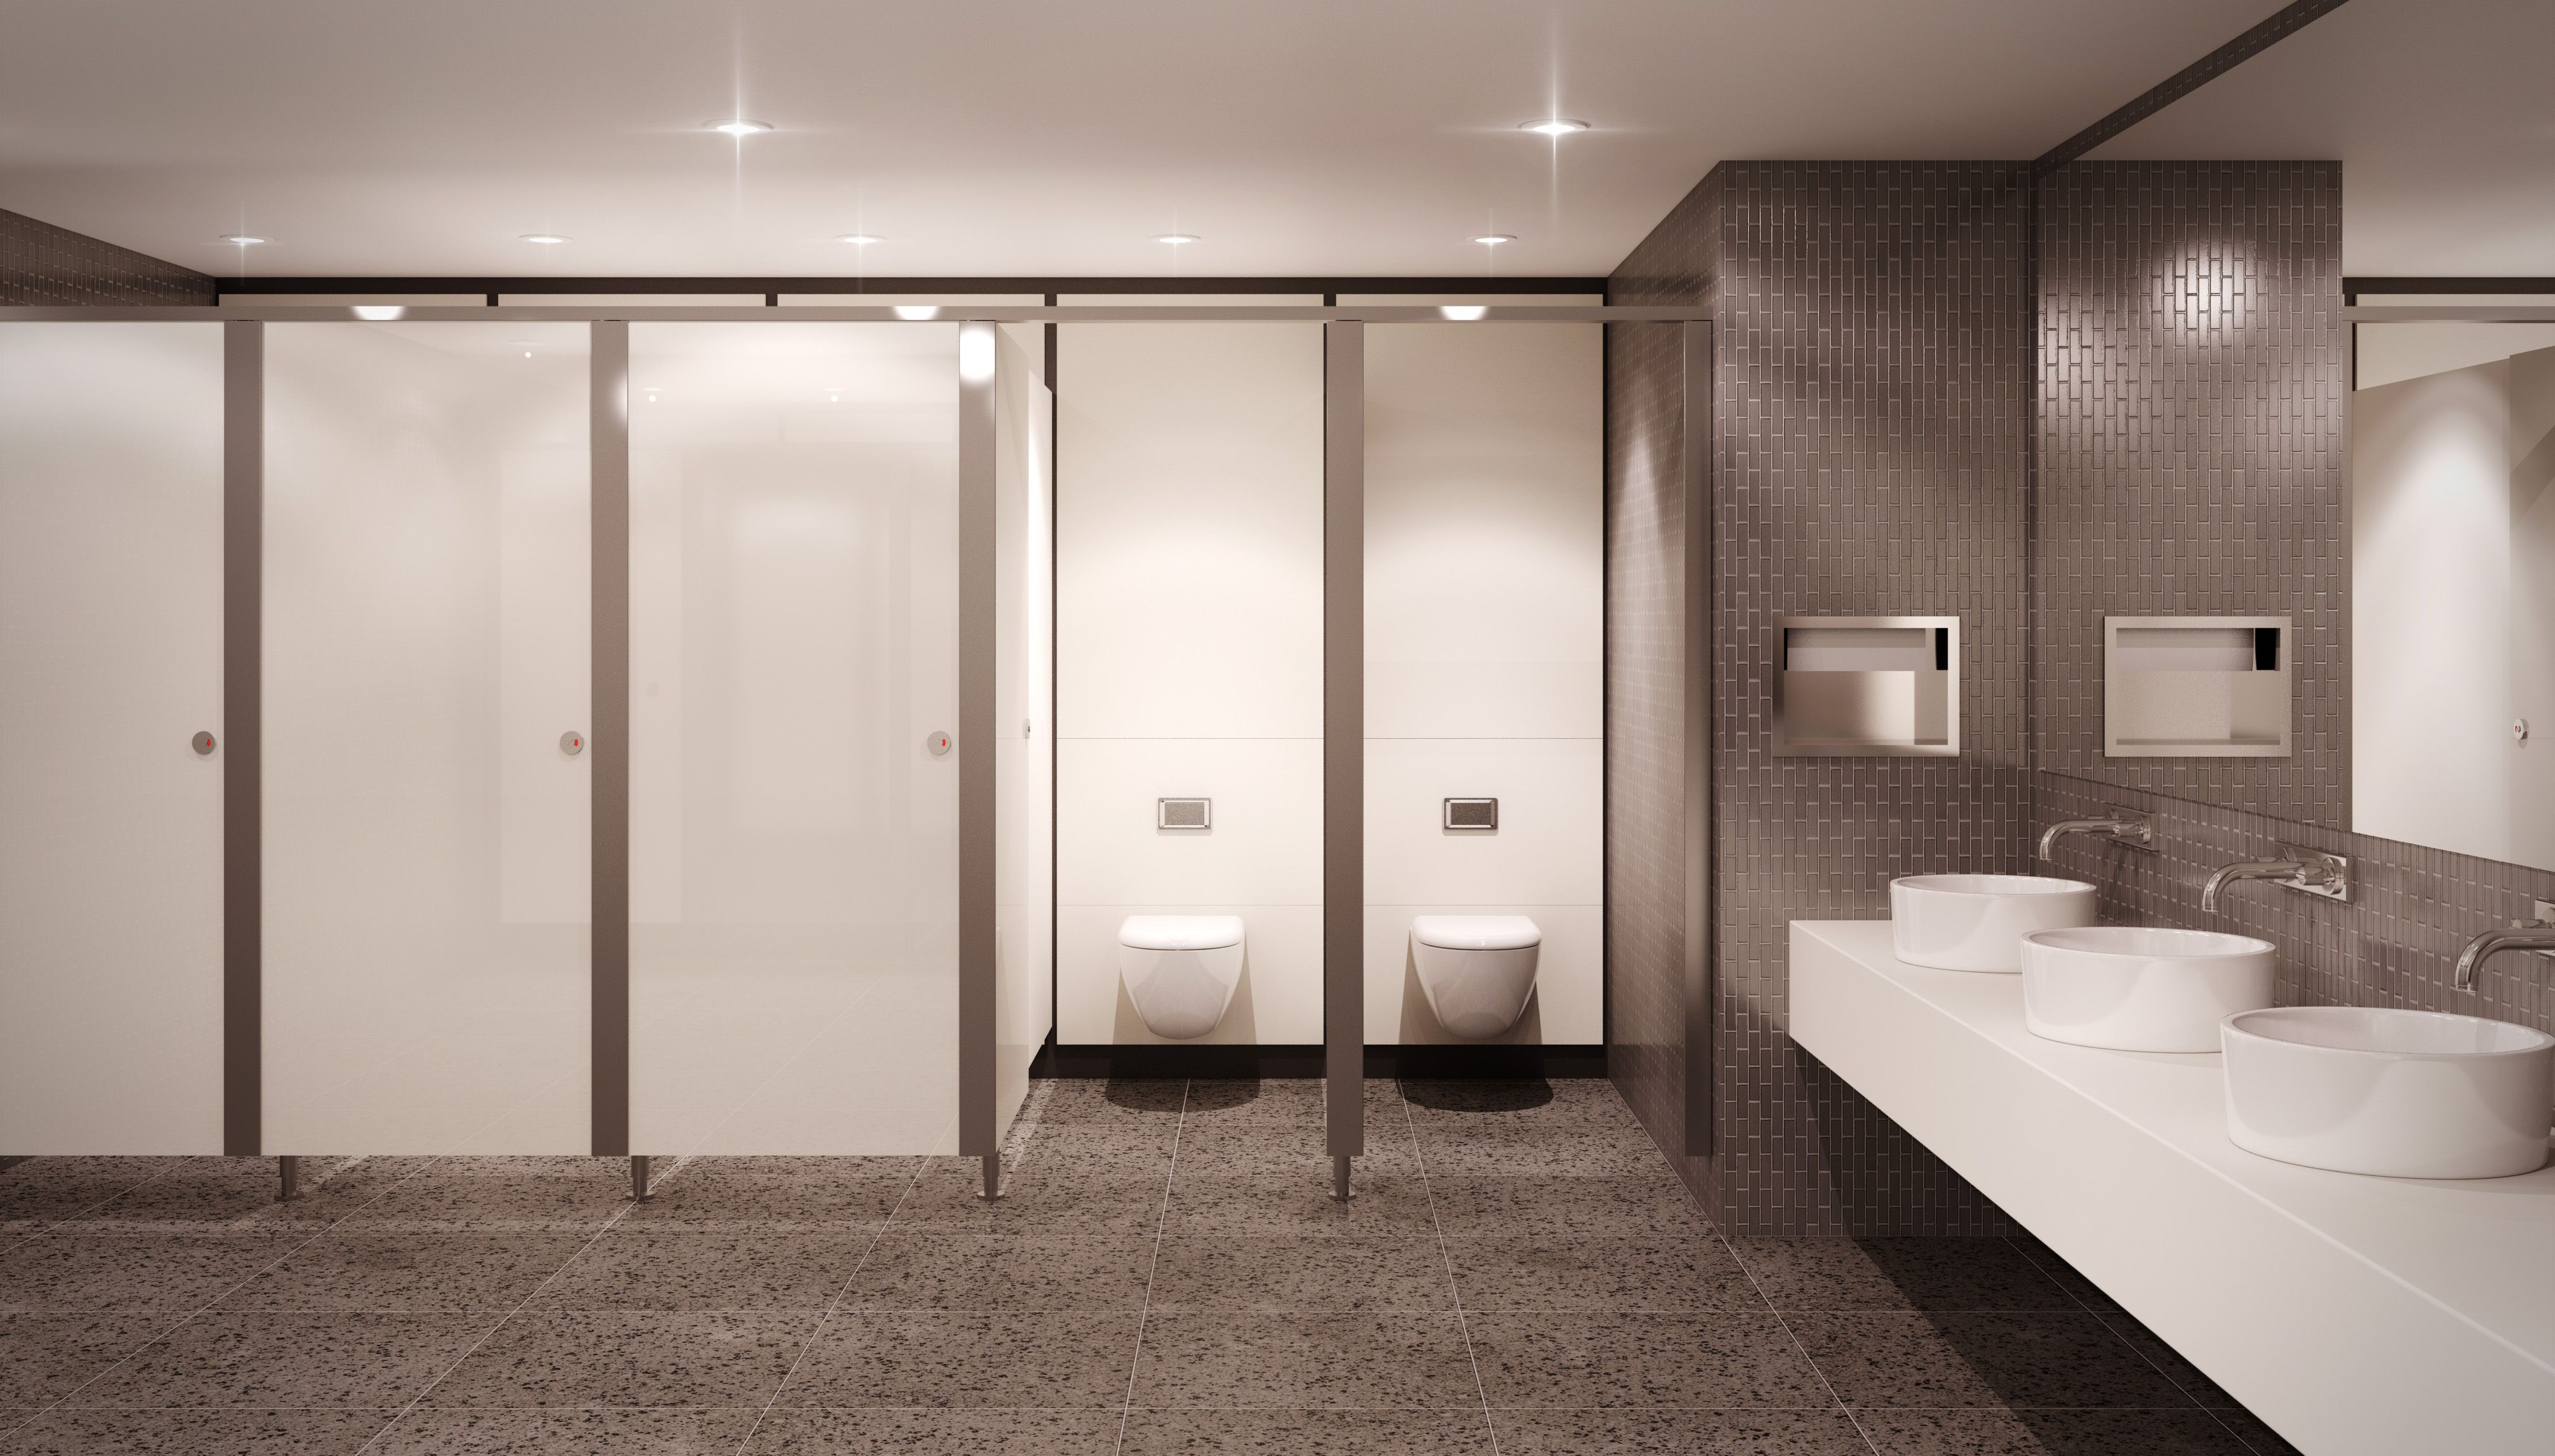 Toilet Cubicle Hotel Google Search Bathing Toilet